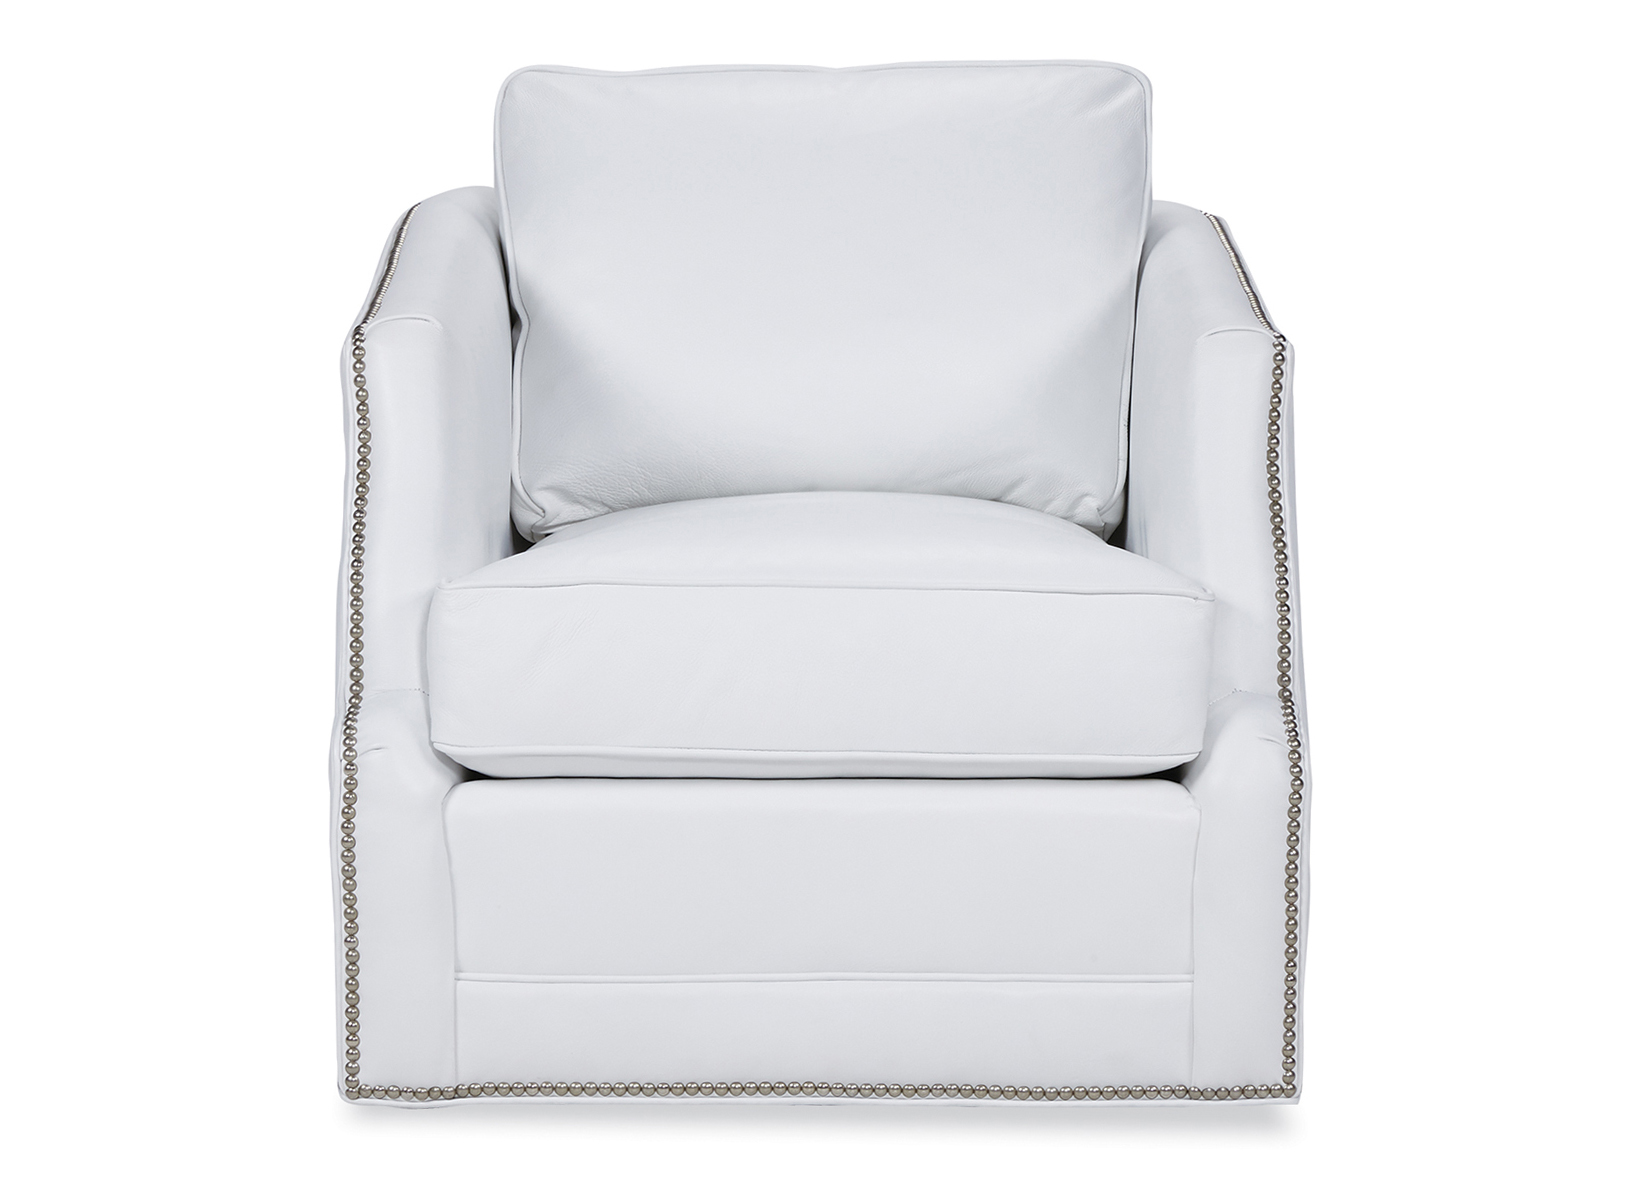 swivel chair king living plush office atticus glider room chairs chaises taylor furniture robb stucky